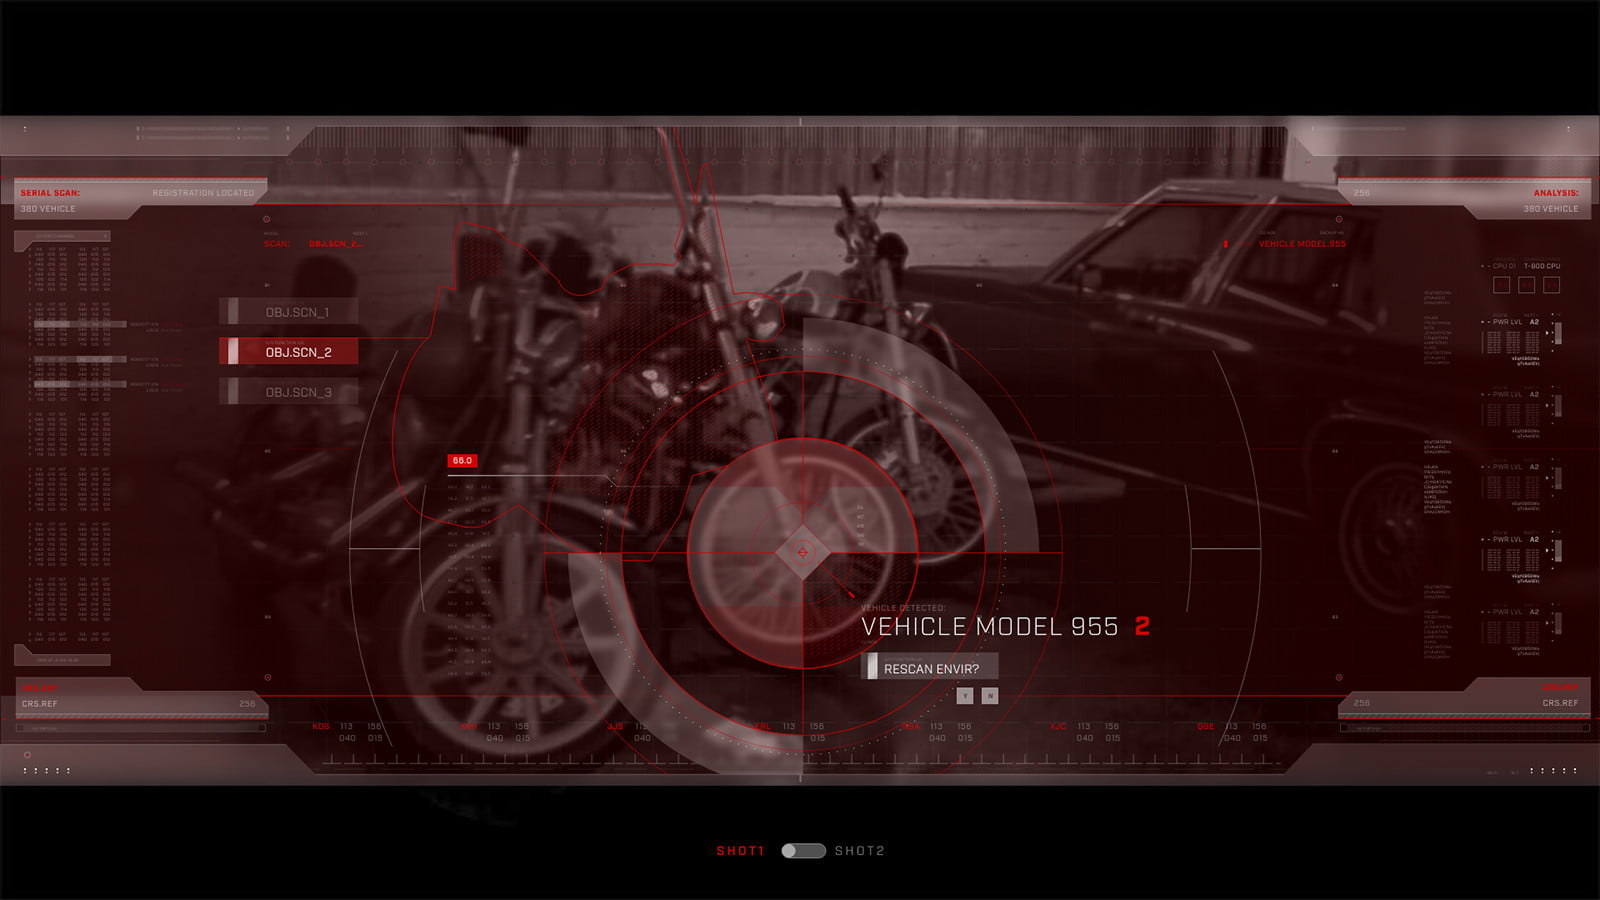 terminator 2 ux redesigned with adobe xd s1 select2 copy